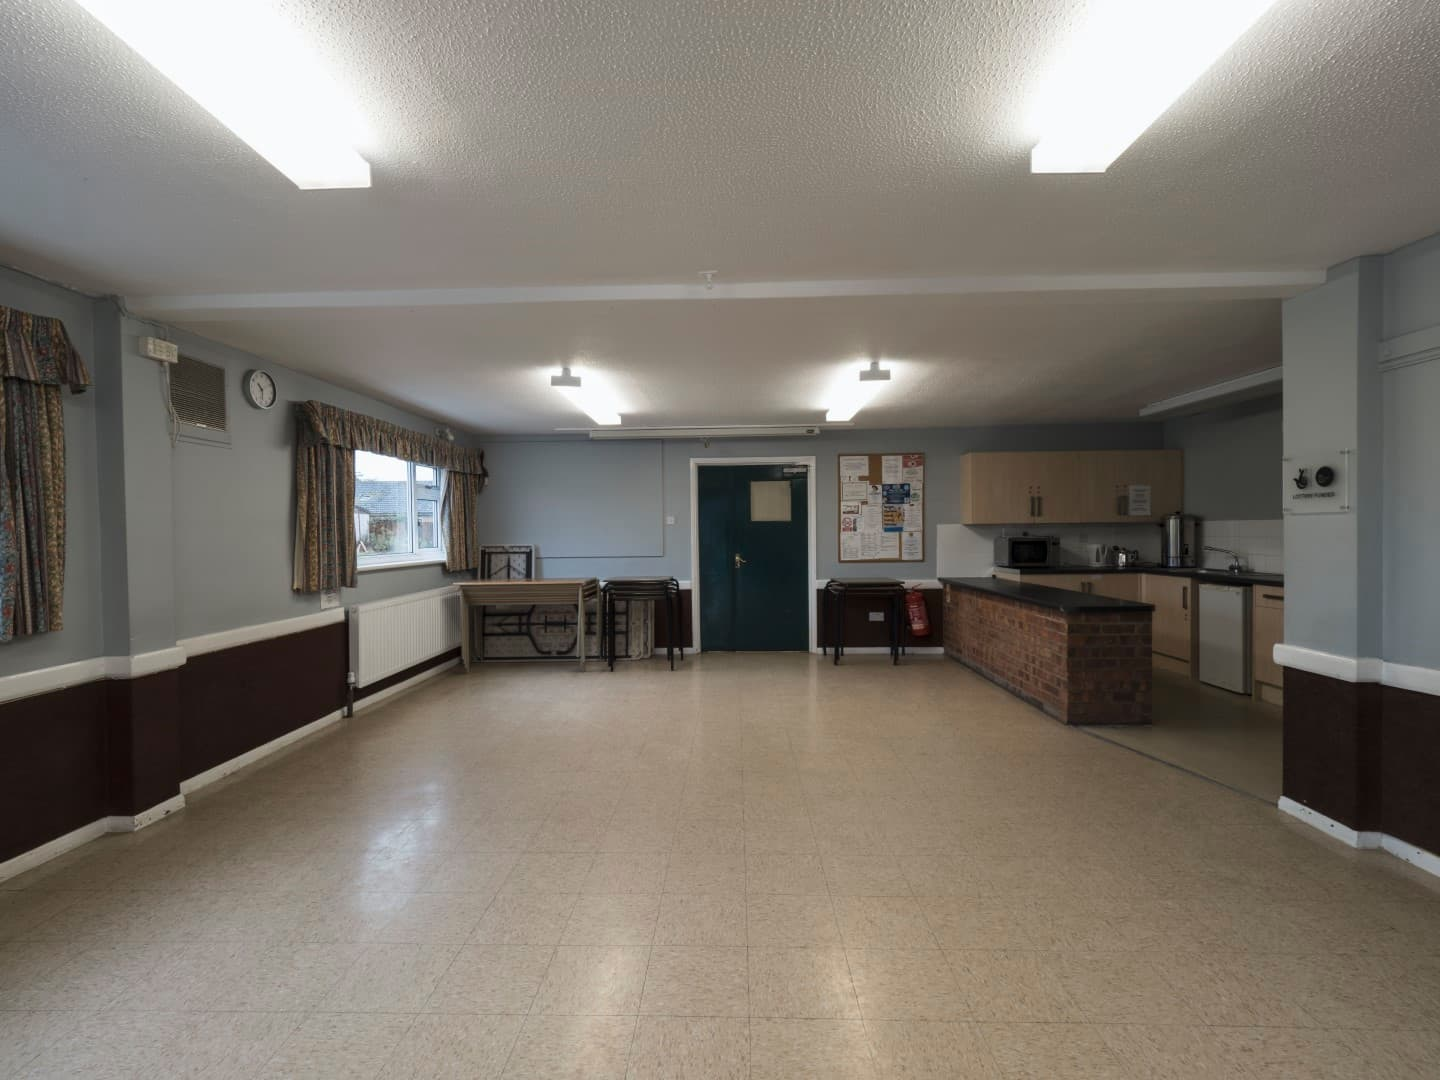 Photo of Small Hall